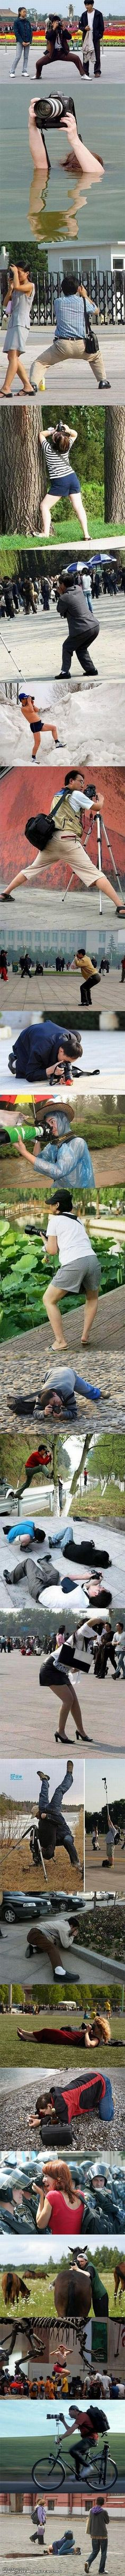 photographers' poses...LOL! I would hurt you if you ever posed like this @shacoy steele Parra - It's all about the angle!!